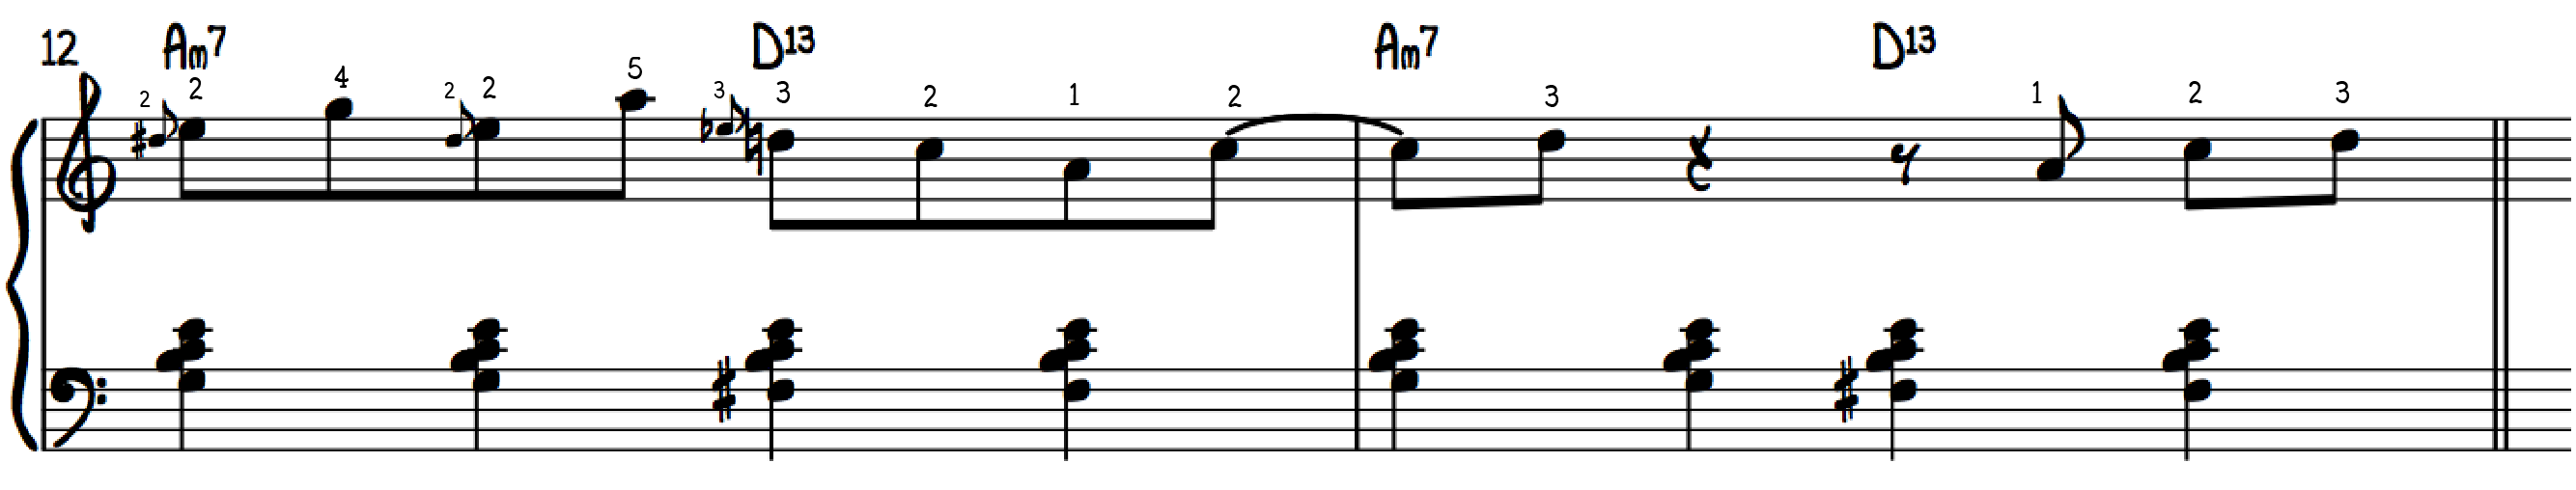 Jazz Piano Grips combining lower position and upper position